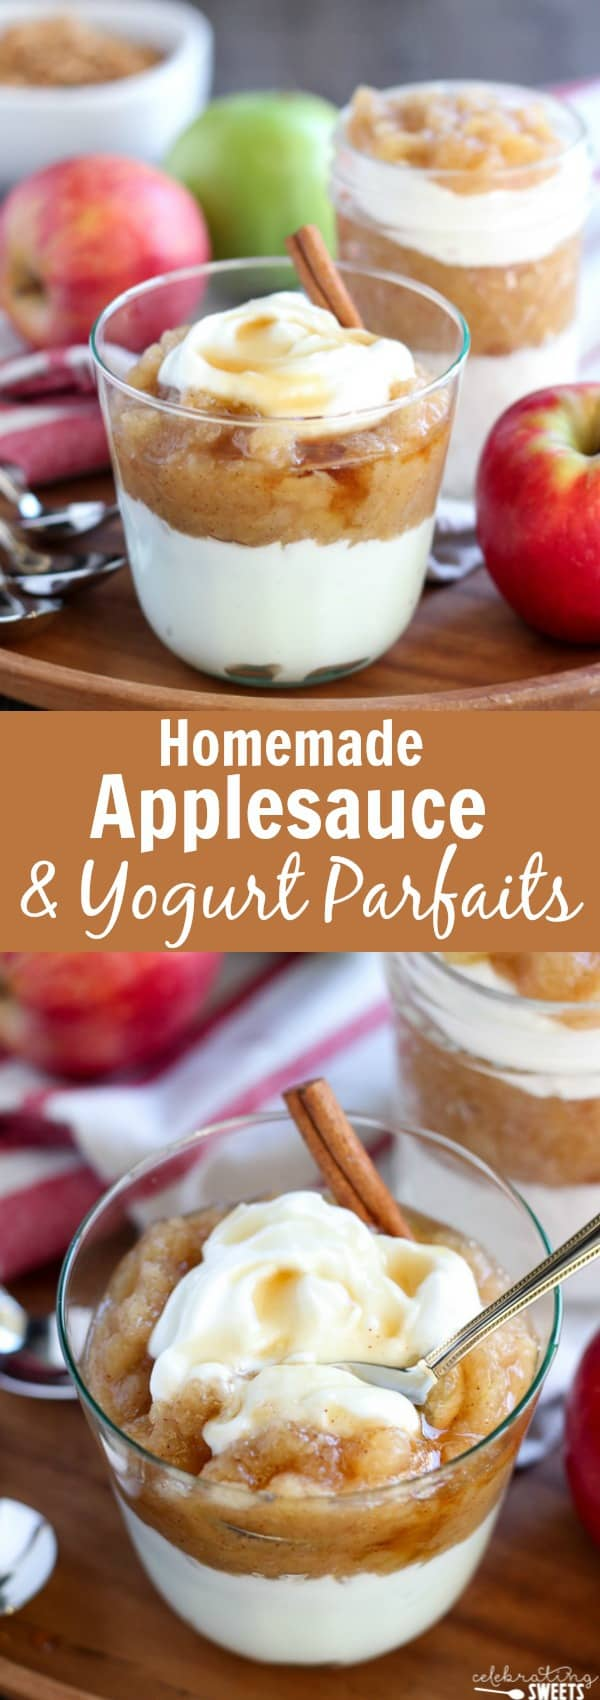 Homemade Applesauce and Yogurt Parfaits - Homemade applesauce flavored with cinnamon and maple syrup and served with yogurt and granola.